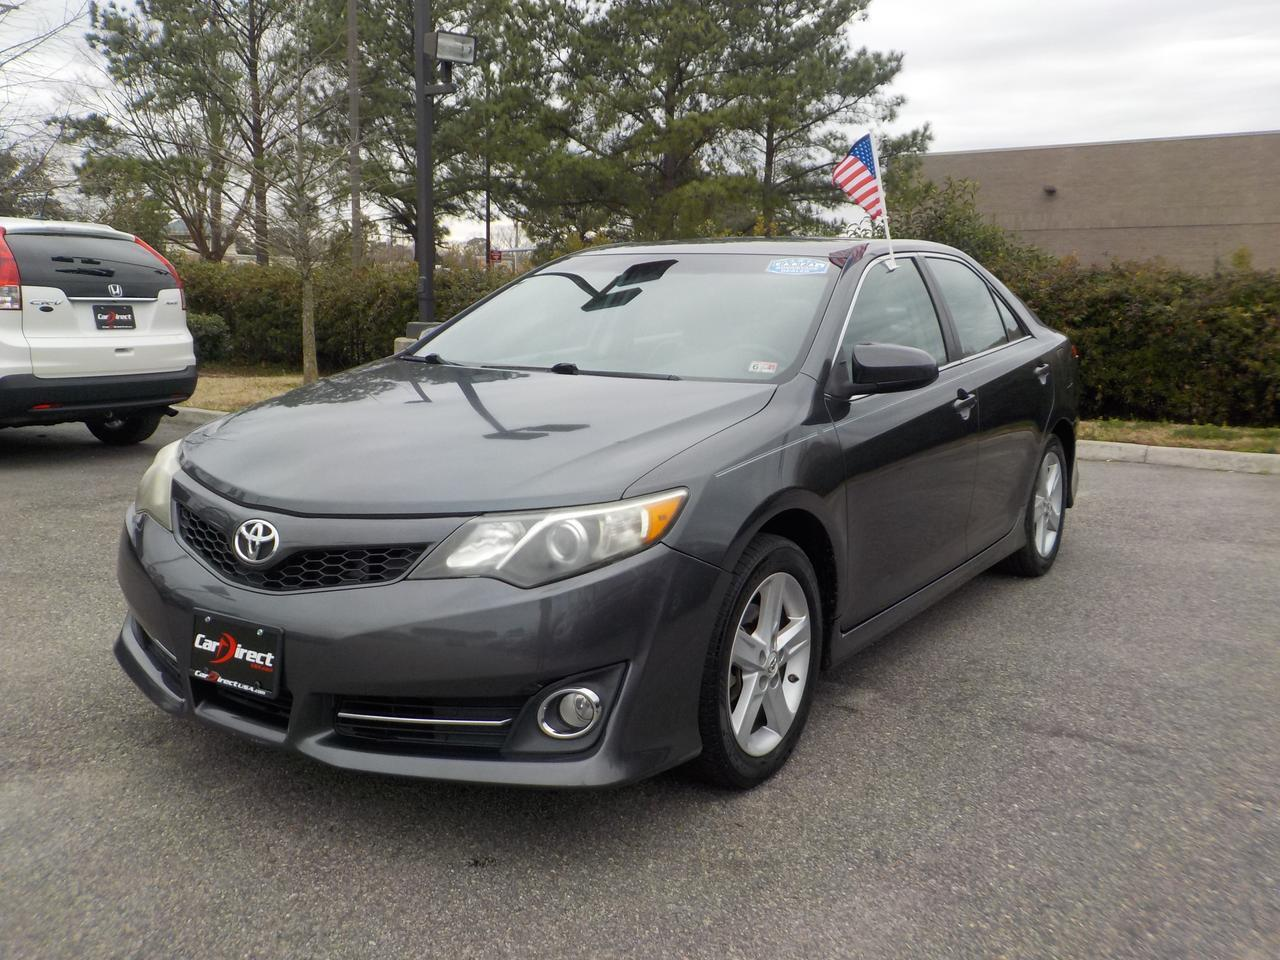 2012 TOYOTA CAMRY SE FWD, BLUETOOTH WIRELESS, WELL MAINTIANED, VERY CLEAN! Virginia Beach VA